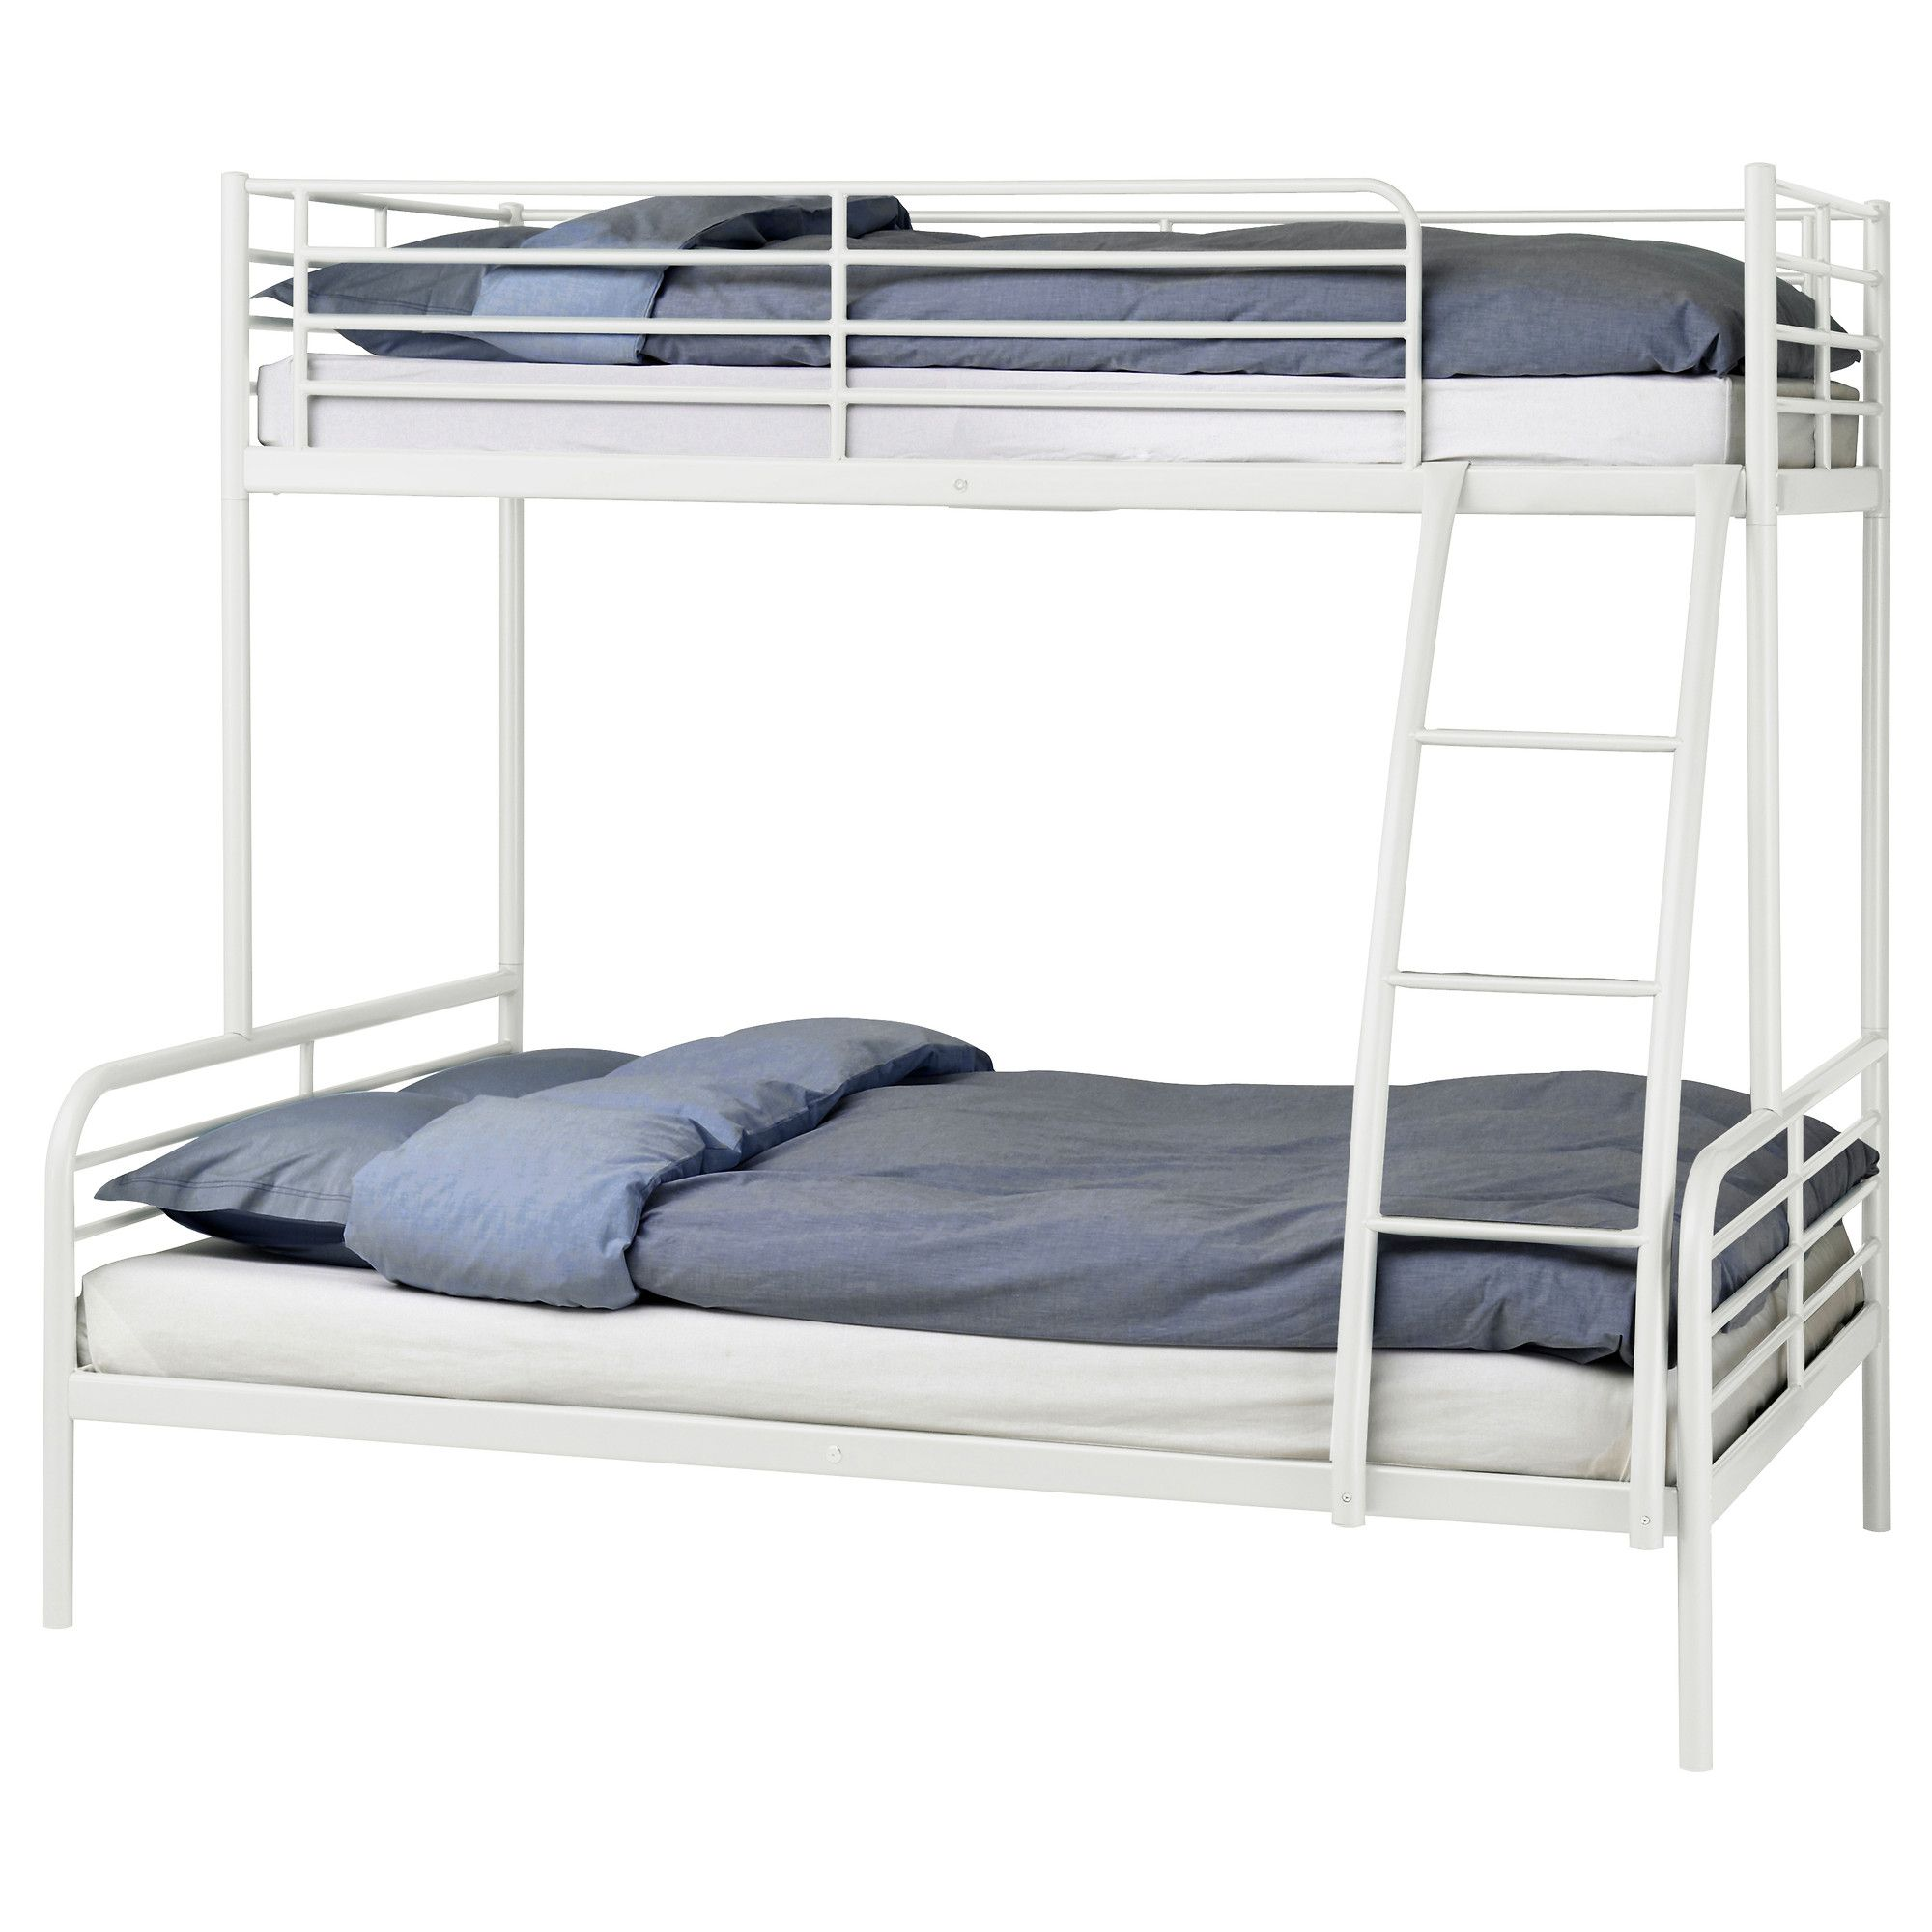 Cheep Option For Guest Bedroom TROMSO Bunk Bed Frame White Length 78 Width 57 Min